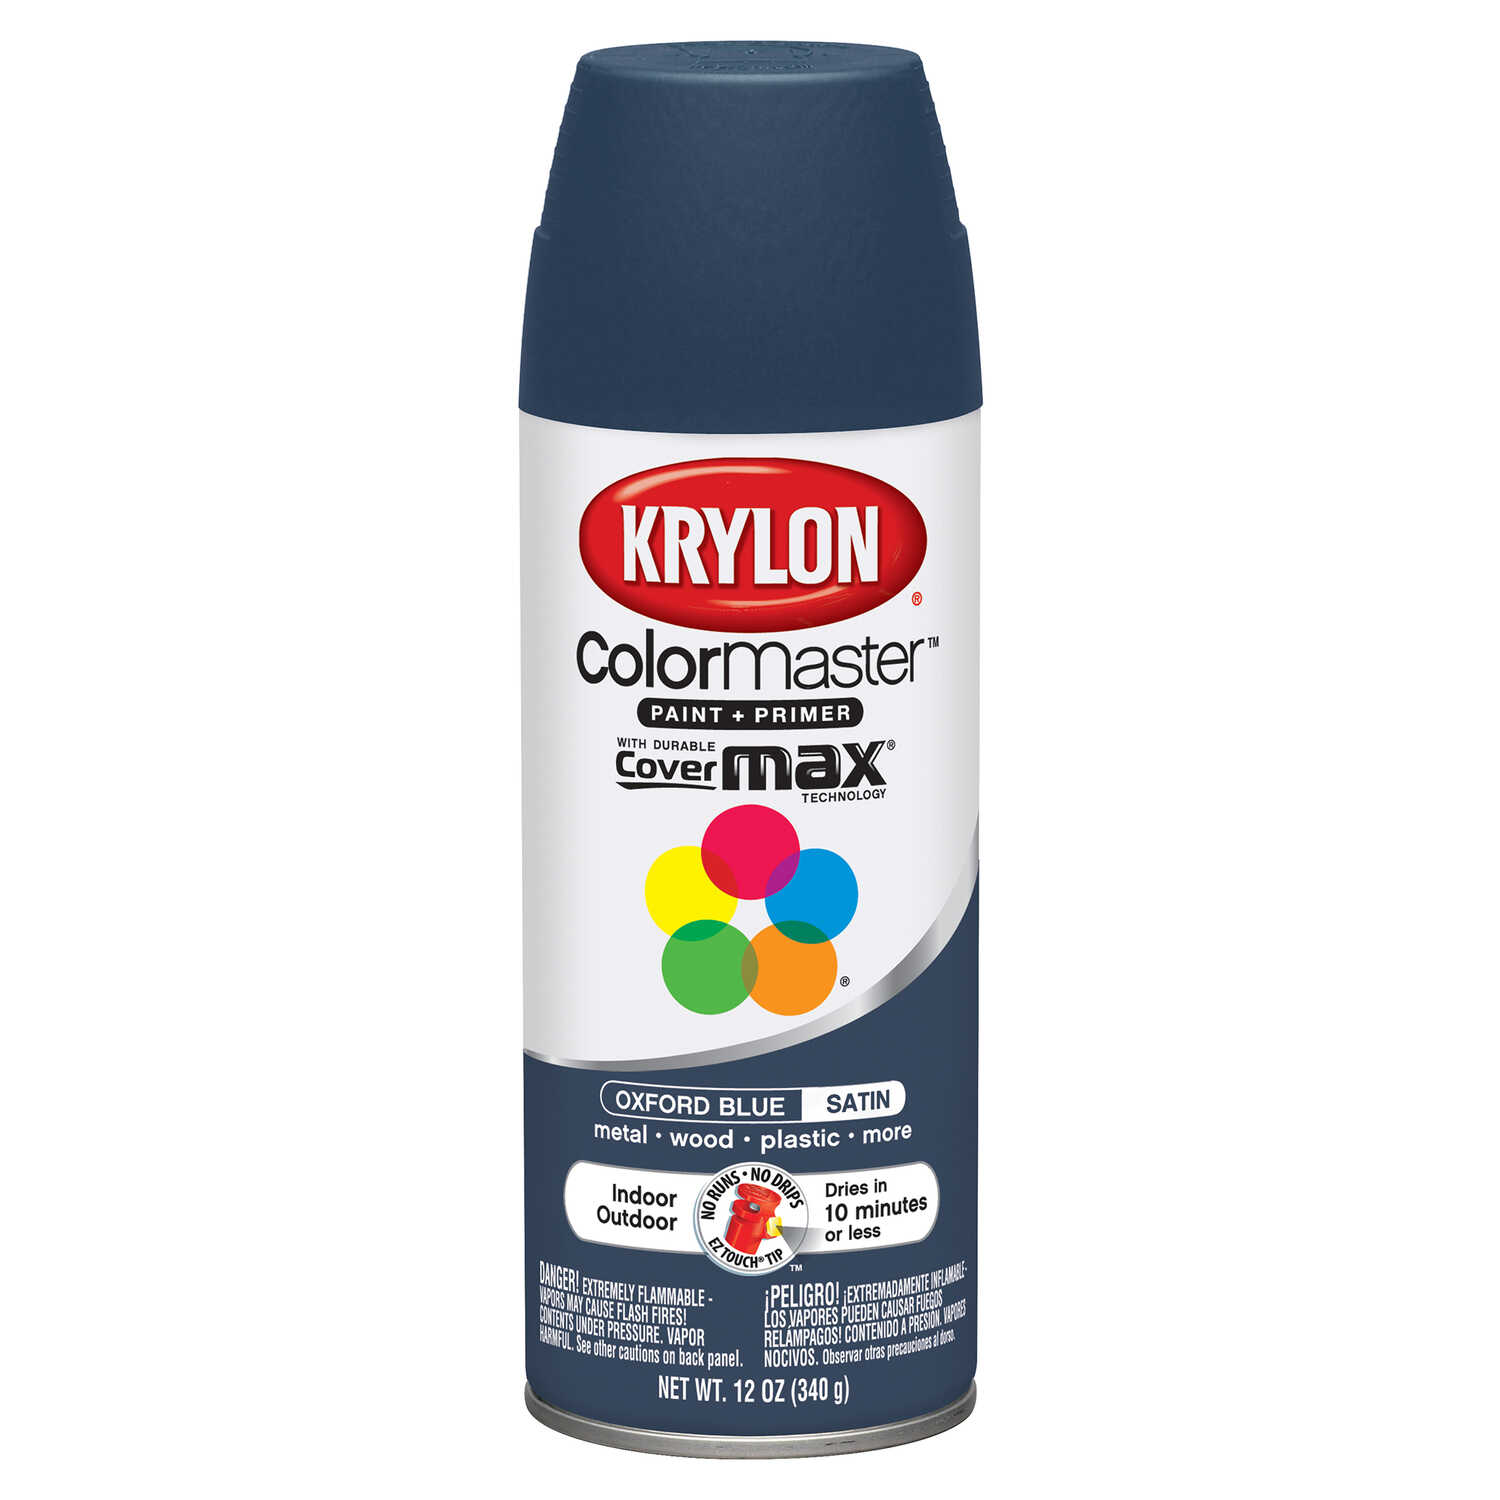 Krylon  ColorMaster  Satin  Oxford Blue  Spray Paint  12 oz.